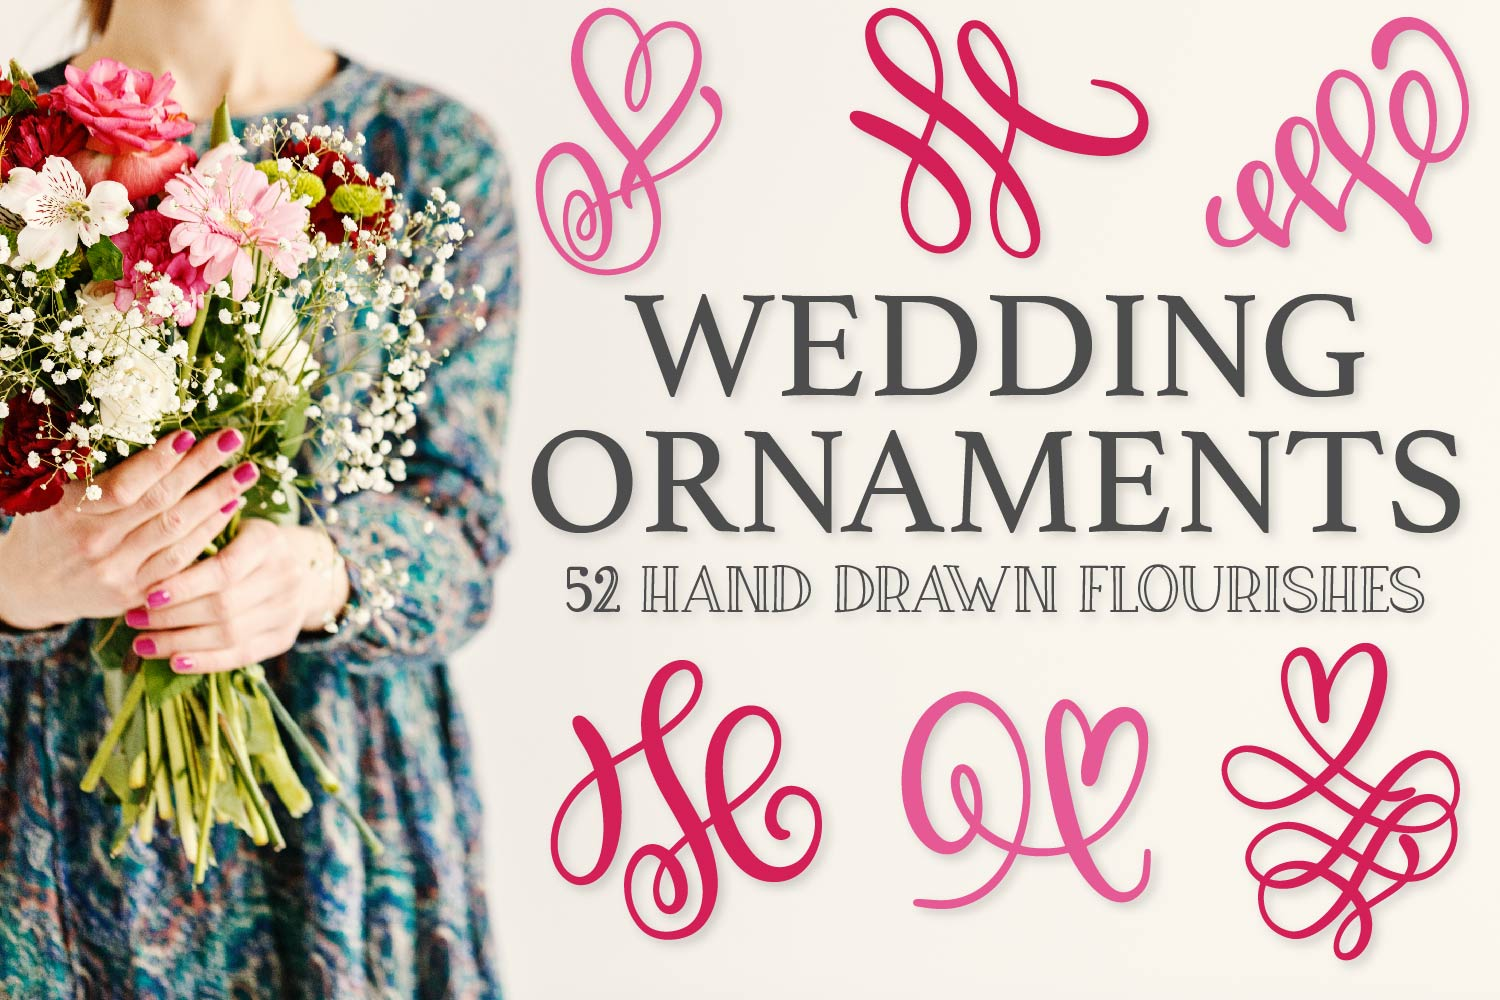 Wedding Ornaments - A Fun Flourish Font example image 1